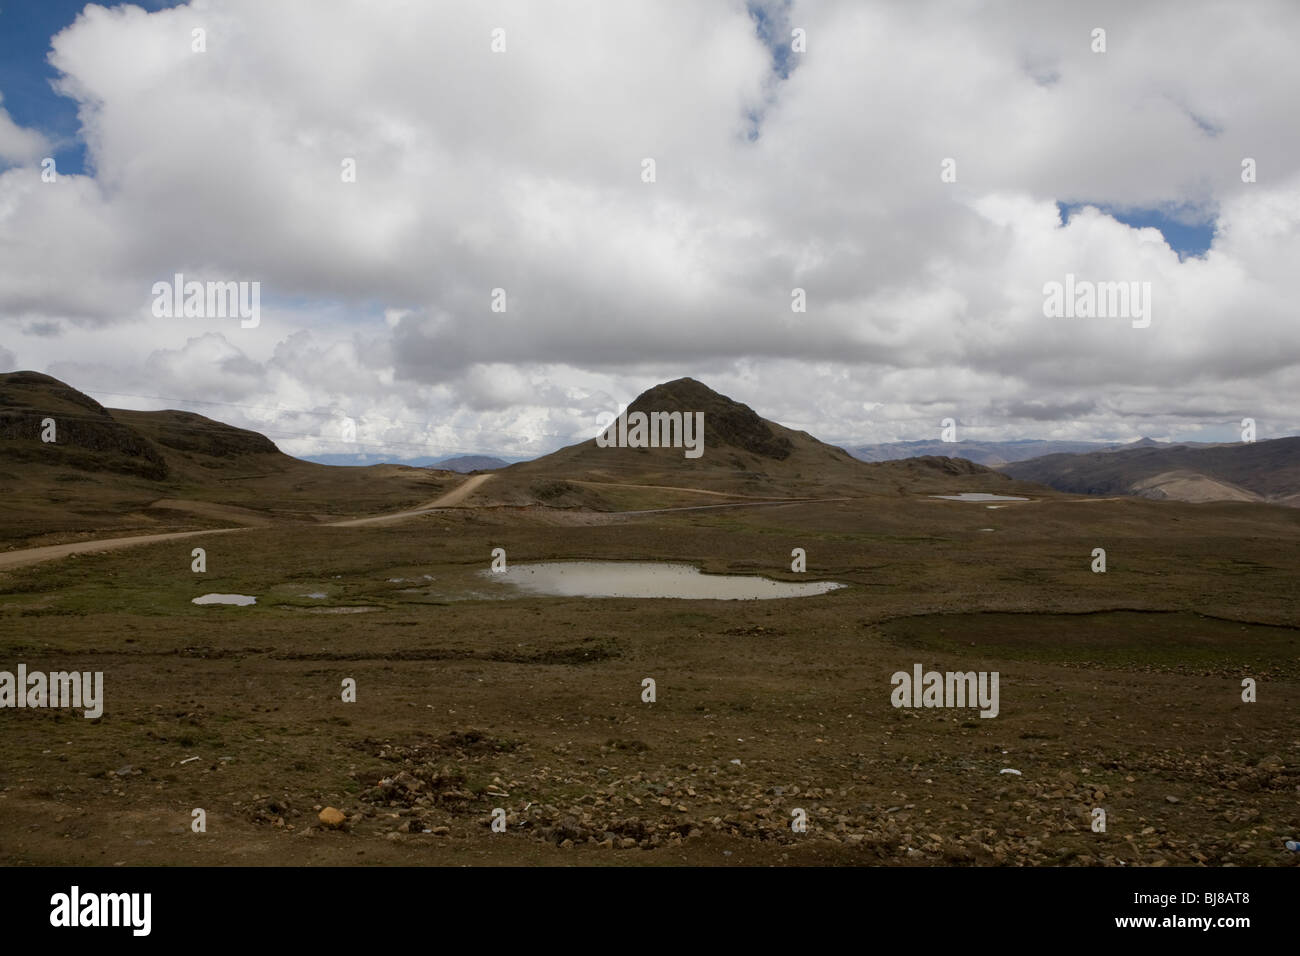 Lanscape from the mountains north of lake titikaka, bolivia - Stock Image